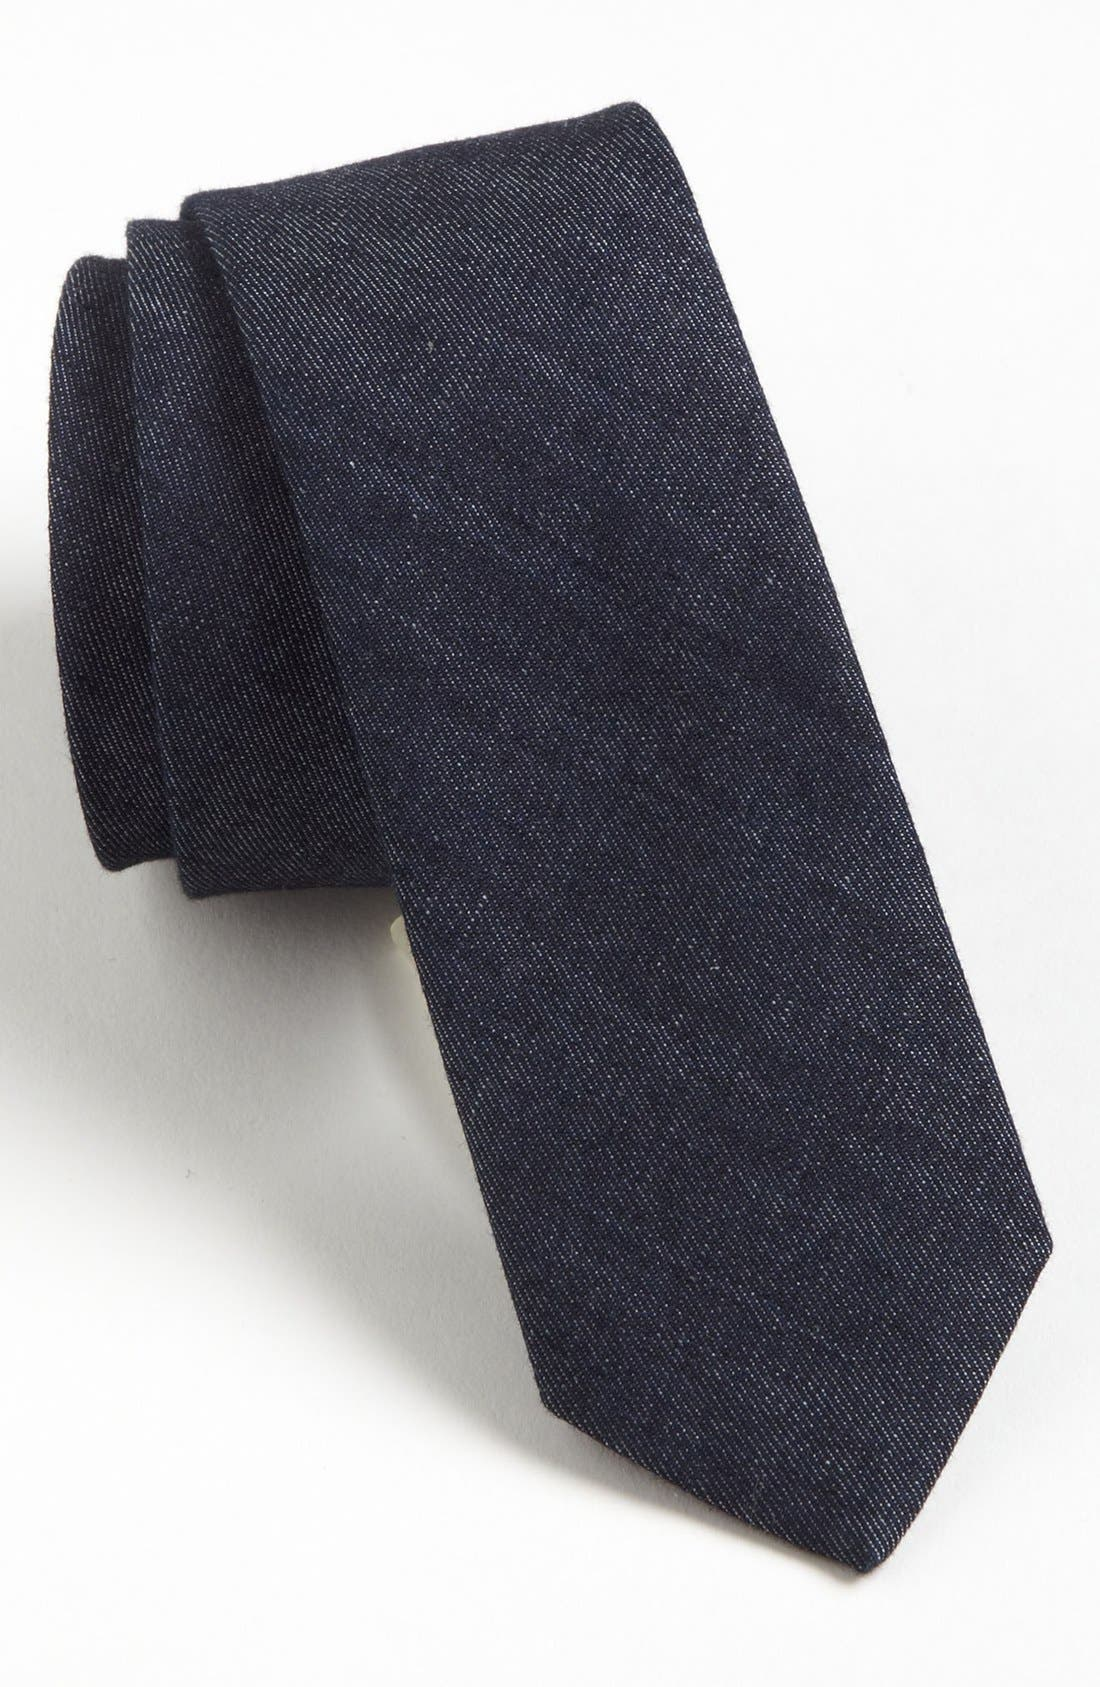 Main Image - Topman Woven Cotton Denim Tie